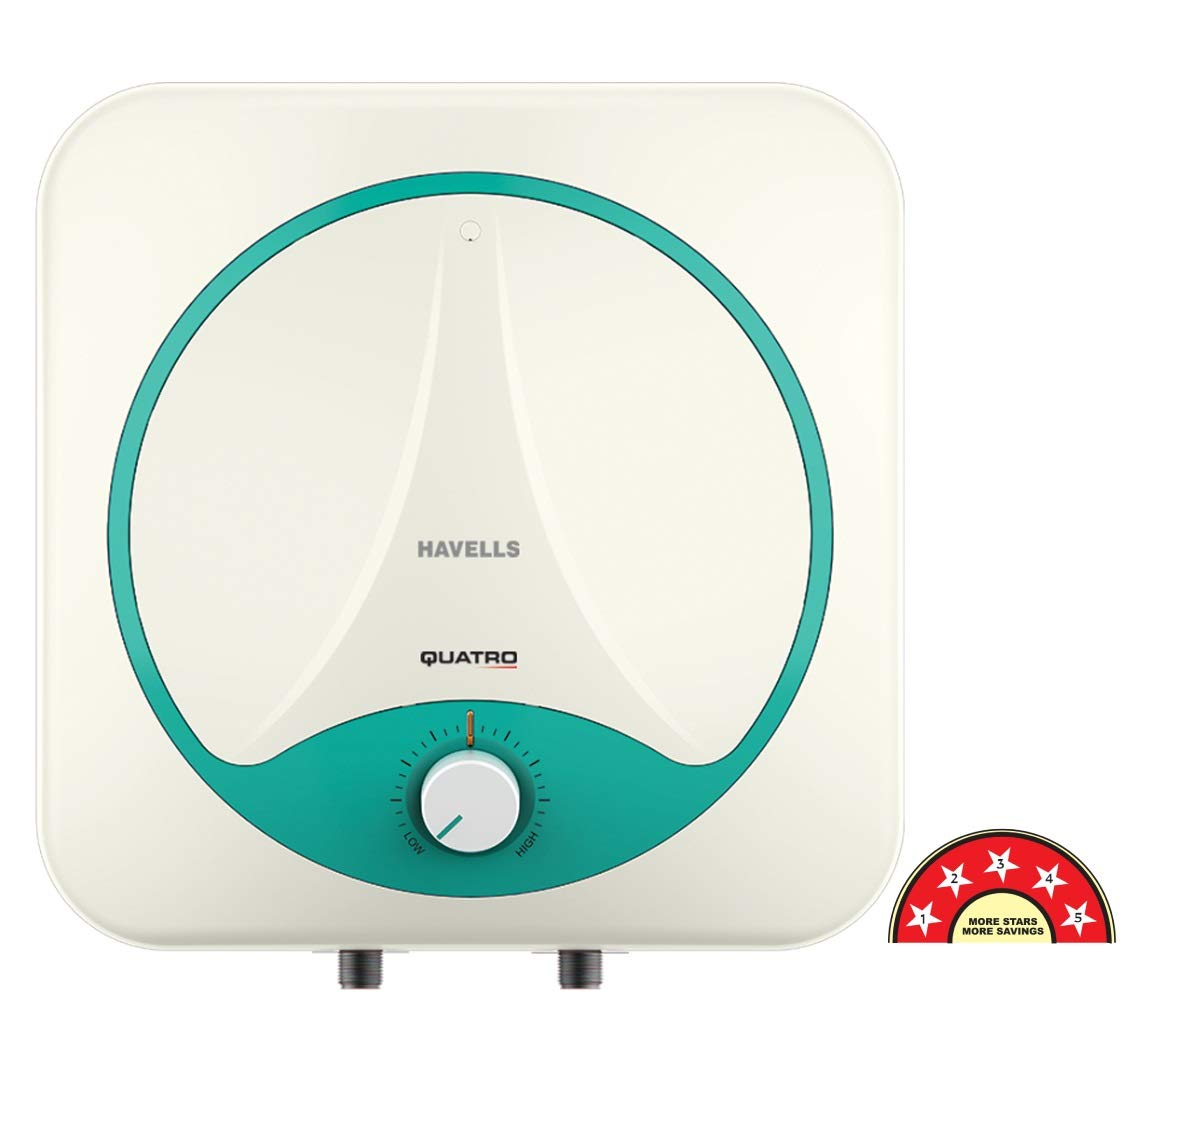 [Apply coupon] Havells Quatro 25-Litre Storage Water Heater (White and Green)